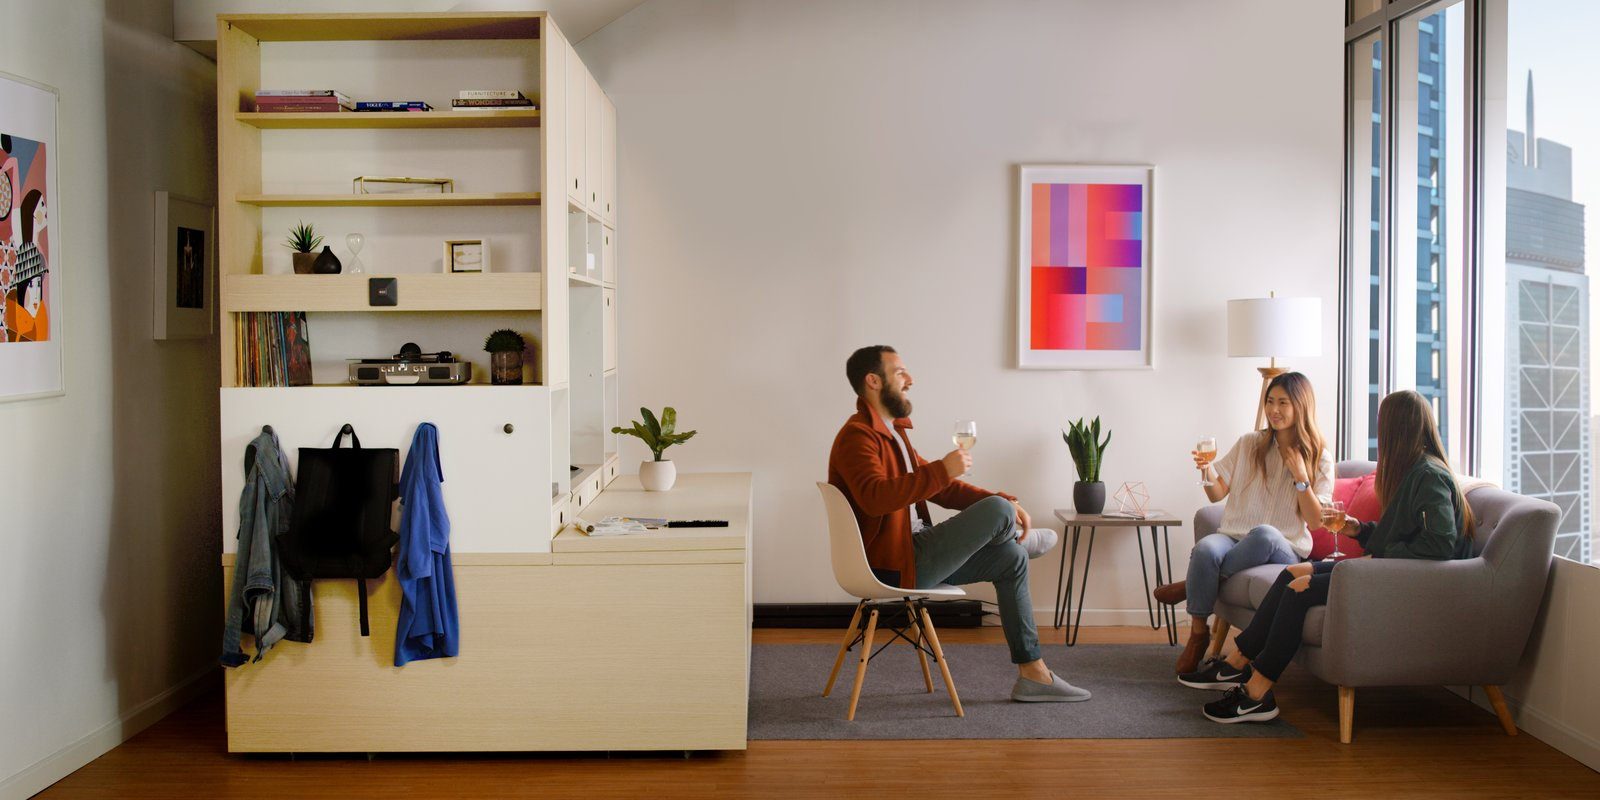 Photo 2 of 5 in Ori by Yves Béhar Is the New Robotic Furniture System Poised to Transform Urban Living